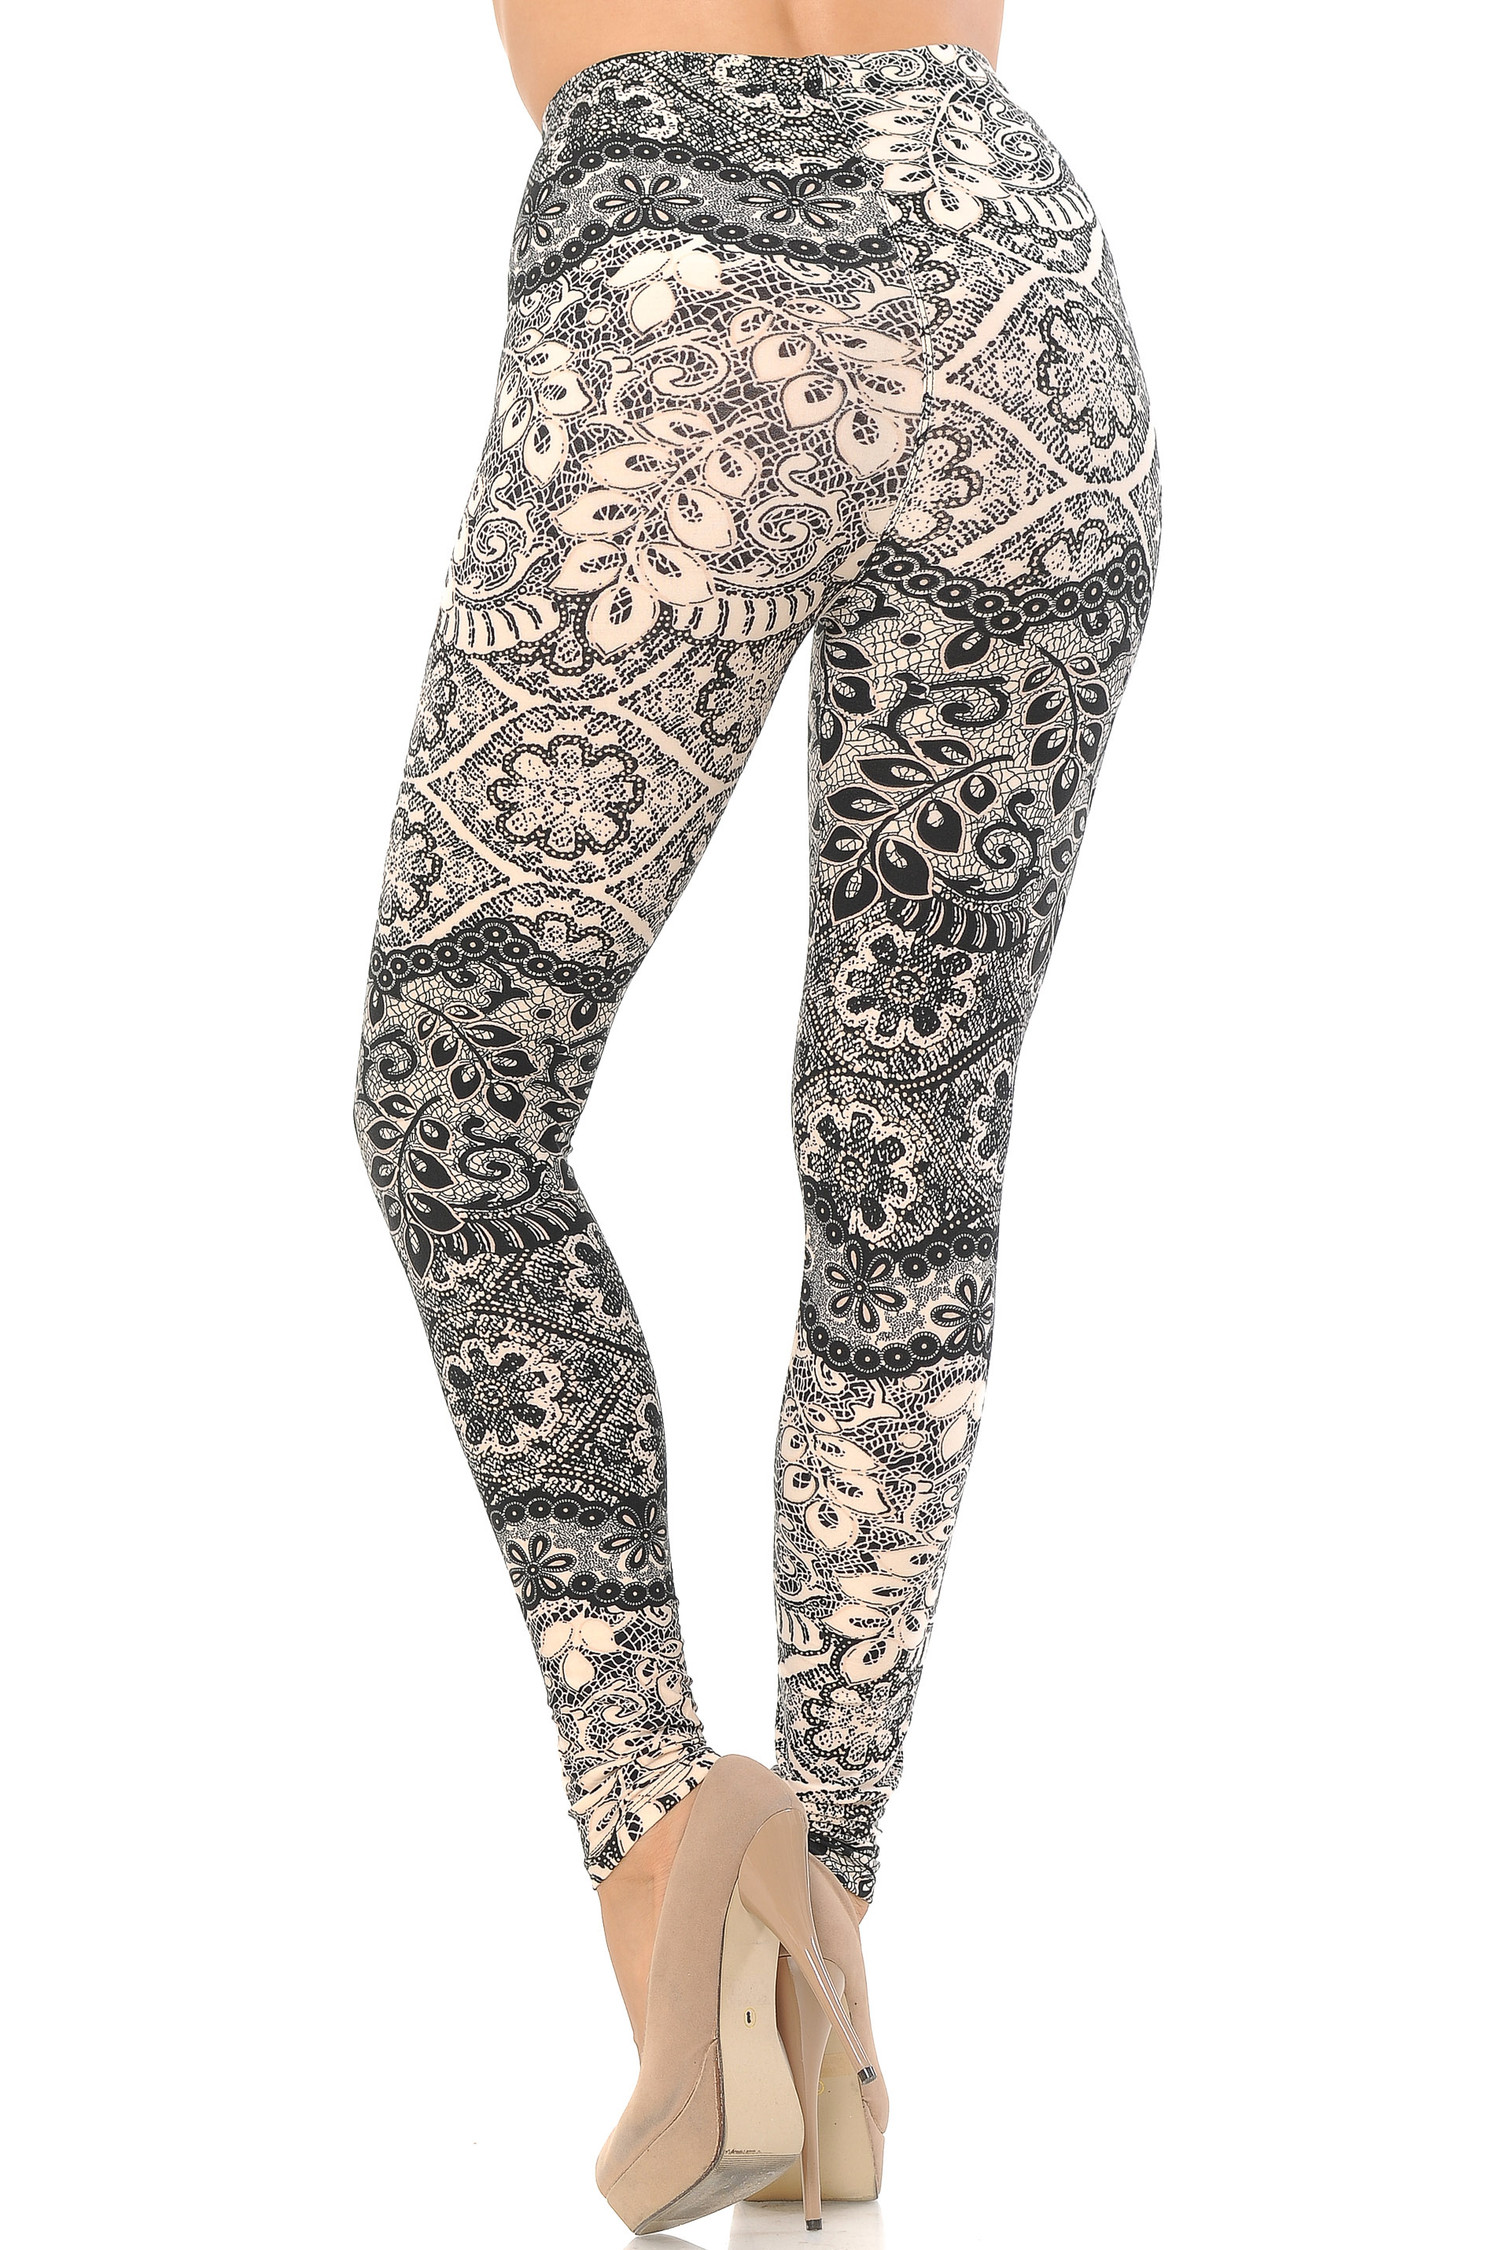 Brushed Brushed Cream Holiday Leaf Extra Plus Size Leggings - 3X-5X Brushed Cream Holiday Leaf Extra Plus Size Leggings - 3X-5Xam Holiday Leaf Leggings